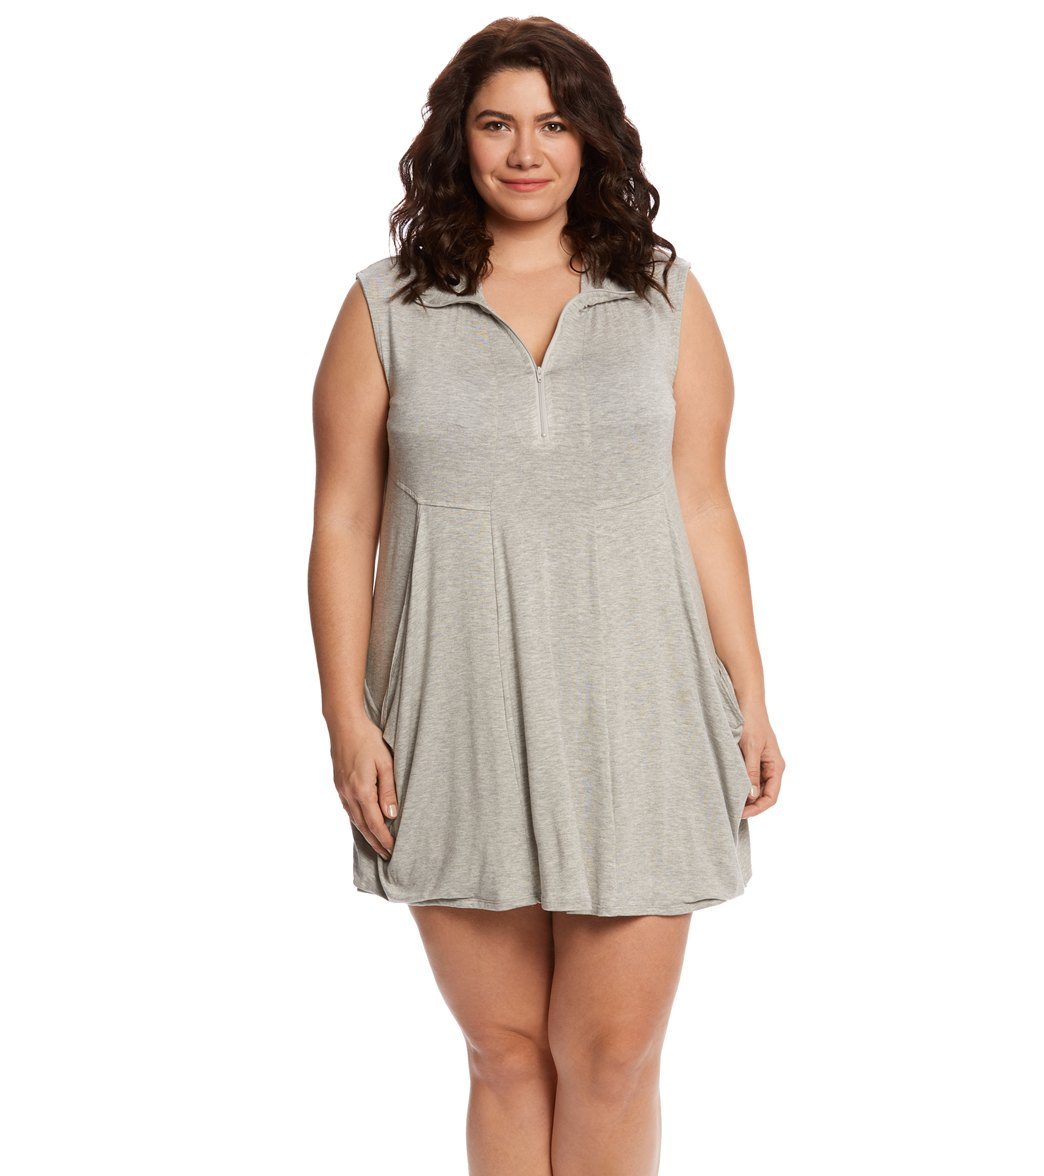 Jldi Plus Size Zip Front Dress At Swimoutlet Free Shipping